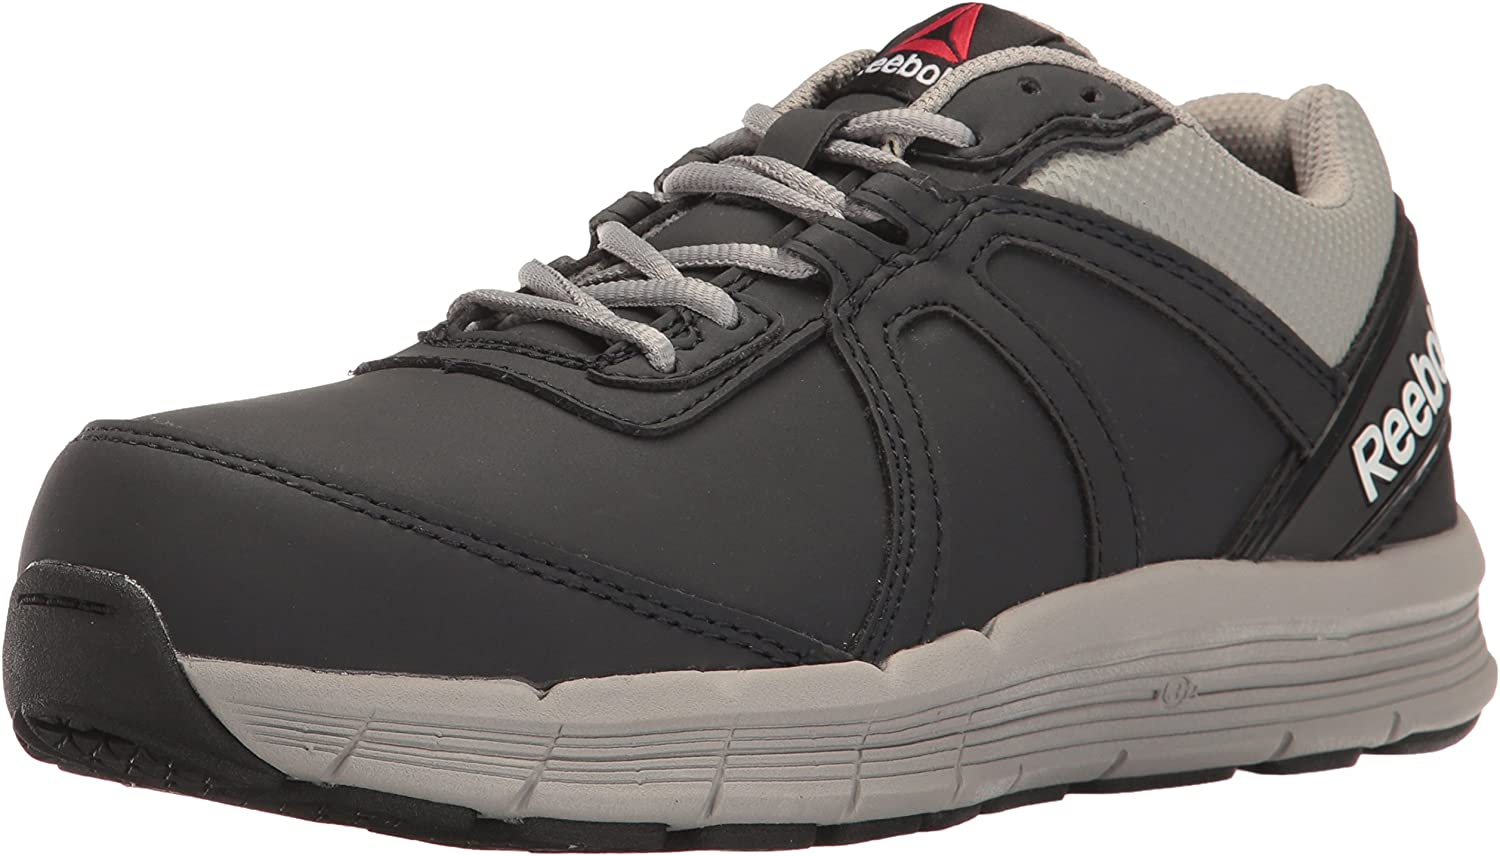 Reebok Work Men's Guide [ギフト/プレゼント/ご褒美] 期間限定今なら送料無料 Industrial RB3502 and Construction